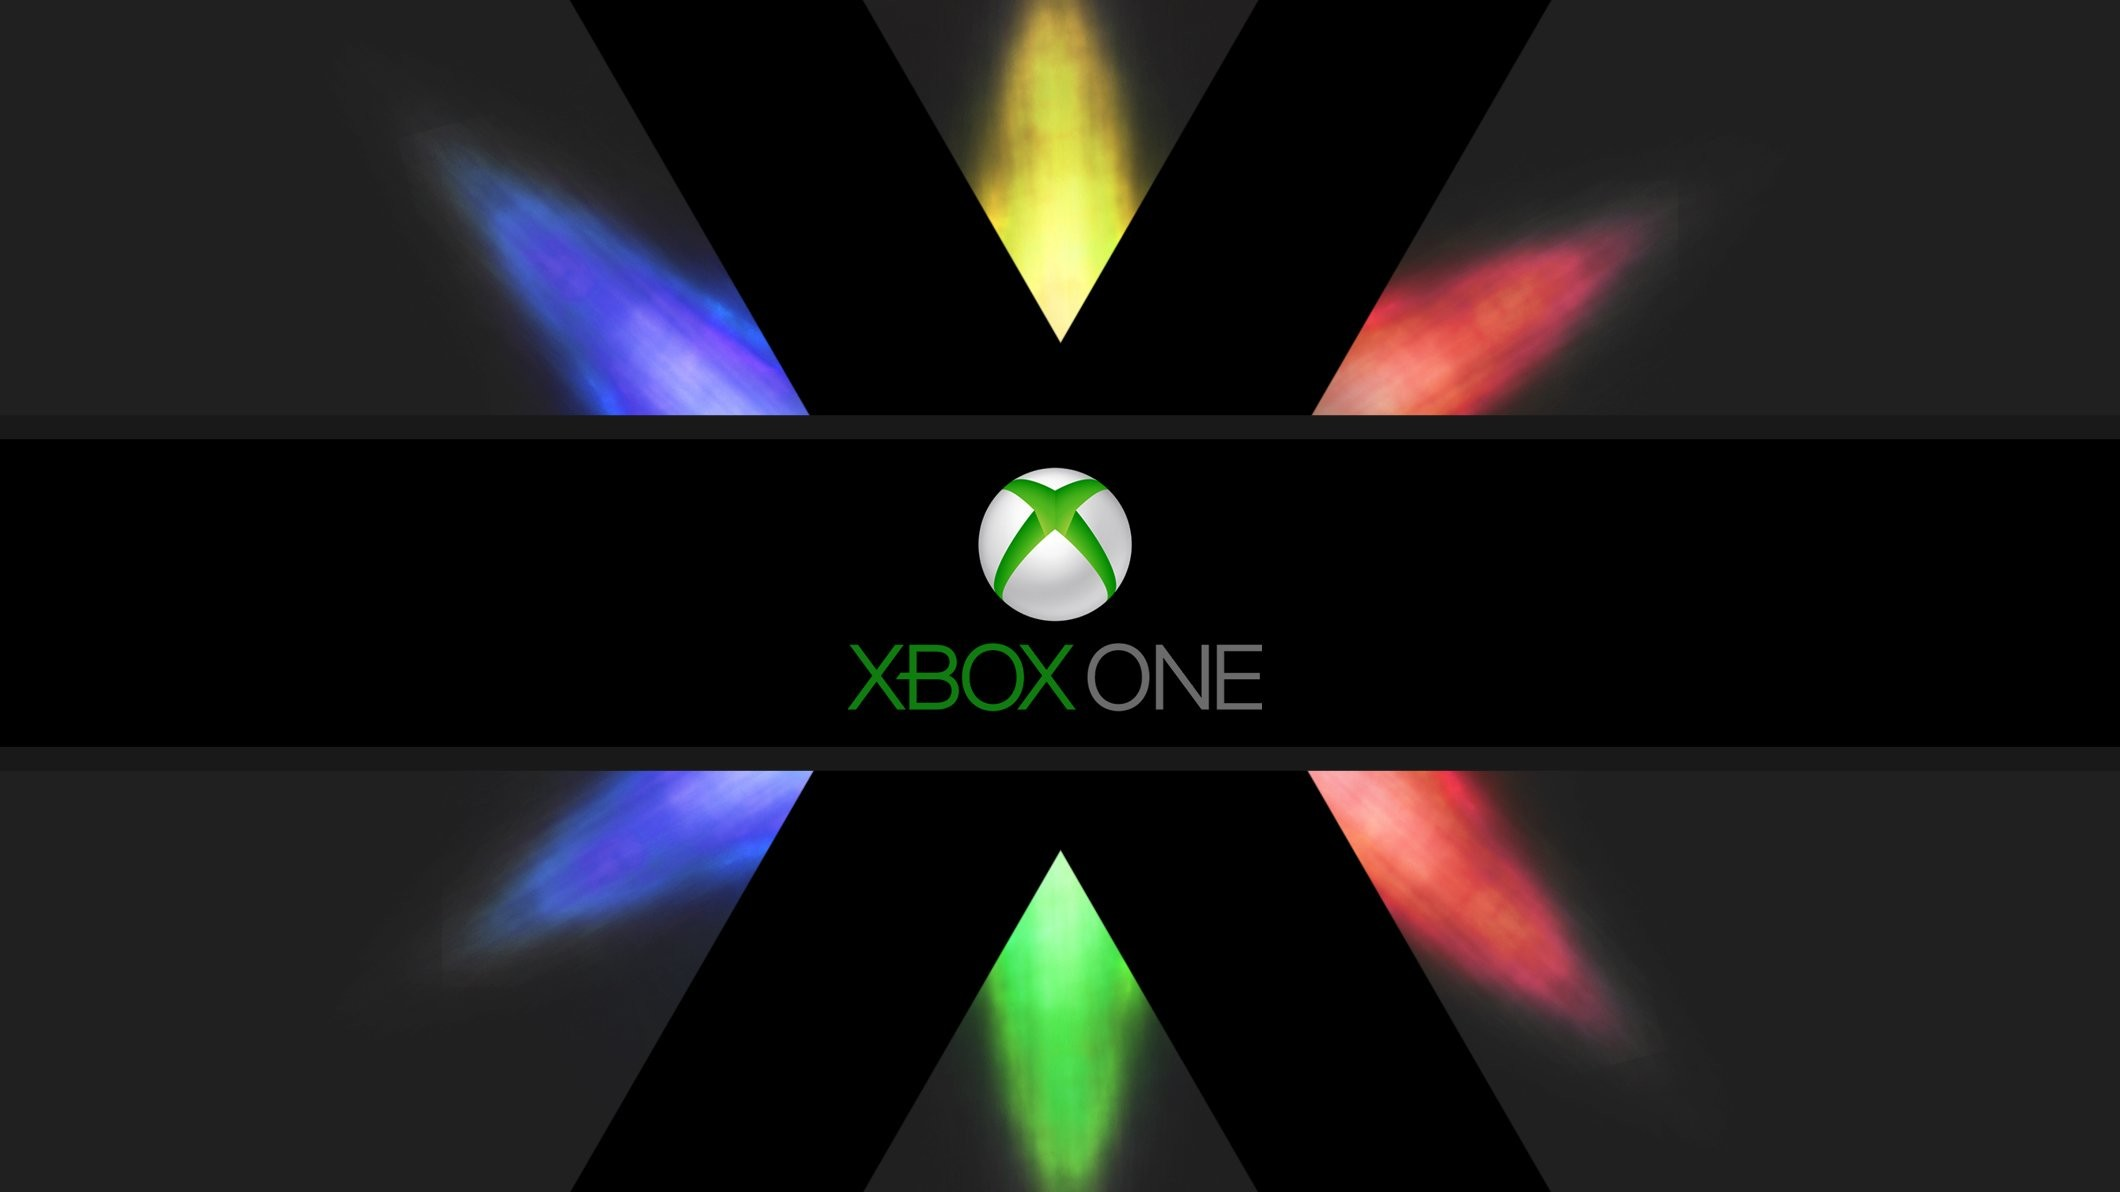 2120x1192 Top Xbox One Resolution Image